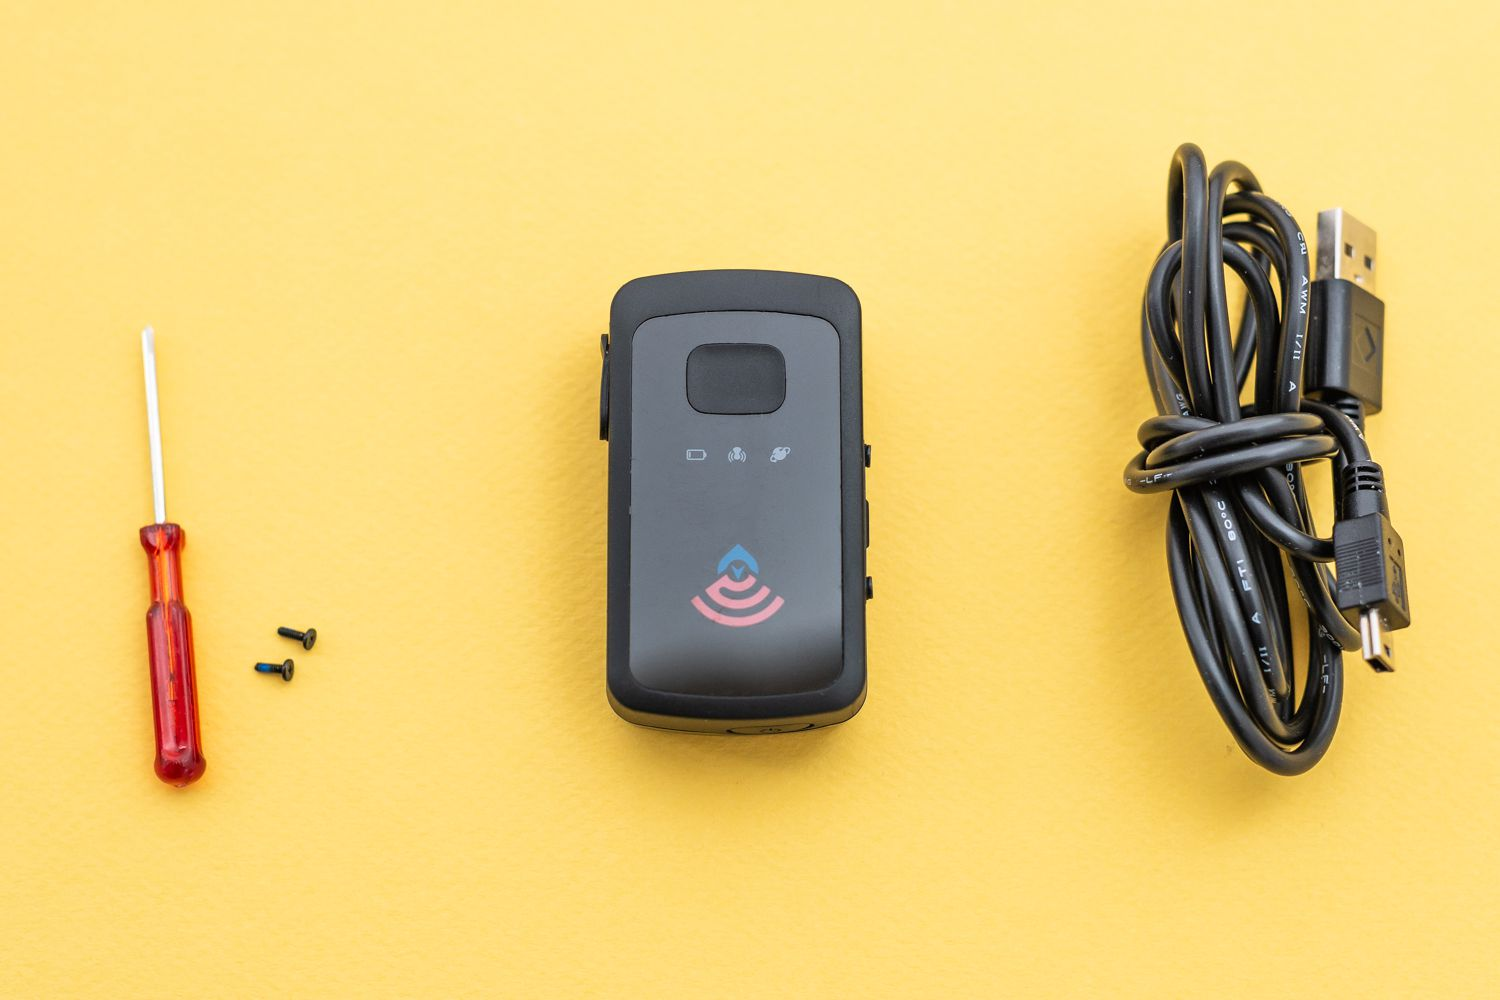 Phone Spy Transmitter The 7 Best Car Gps Trackers To Buy In 2019 Tech Sti Gl300